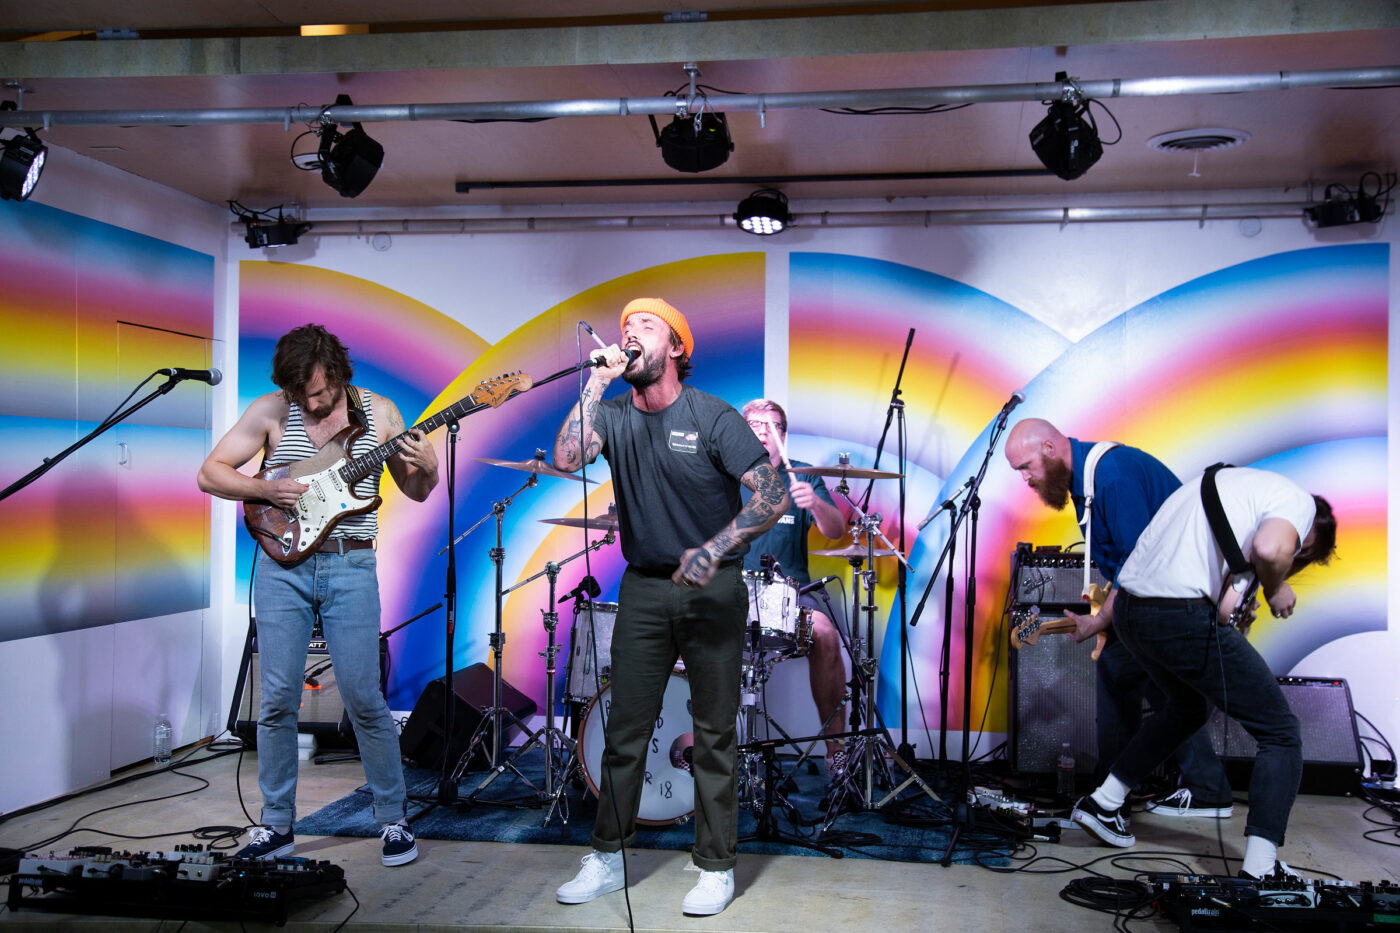 HO18_SidestripeSessions_S1_Ep8_IDLES_Performance_HD6A8380